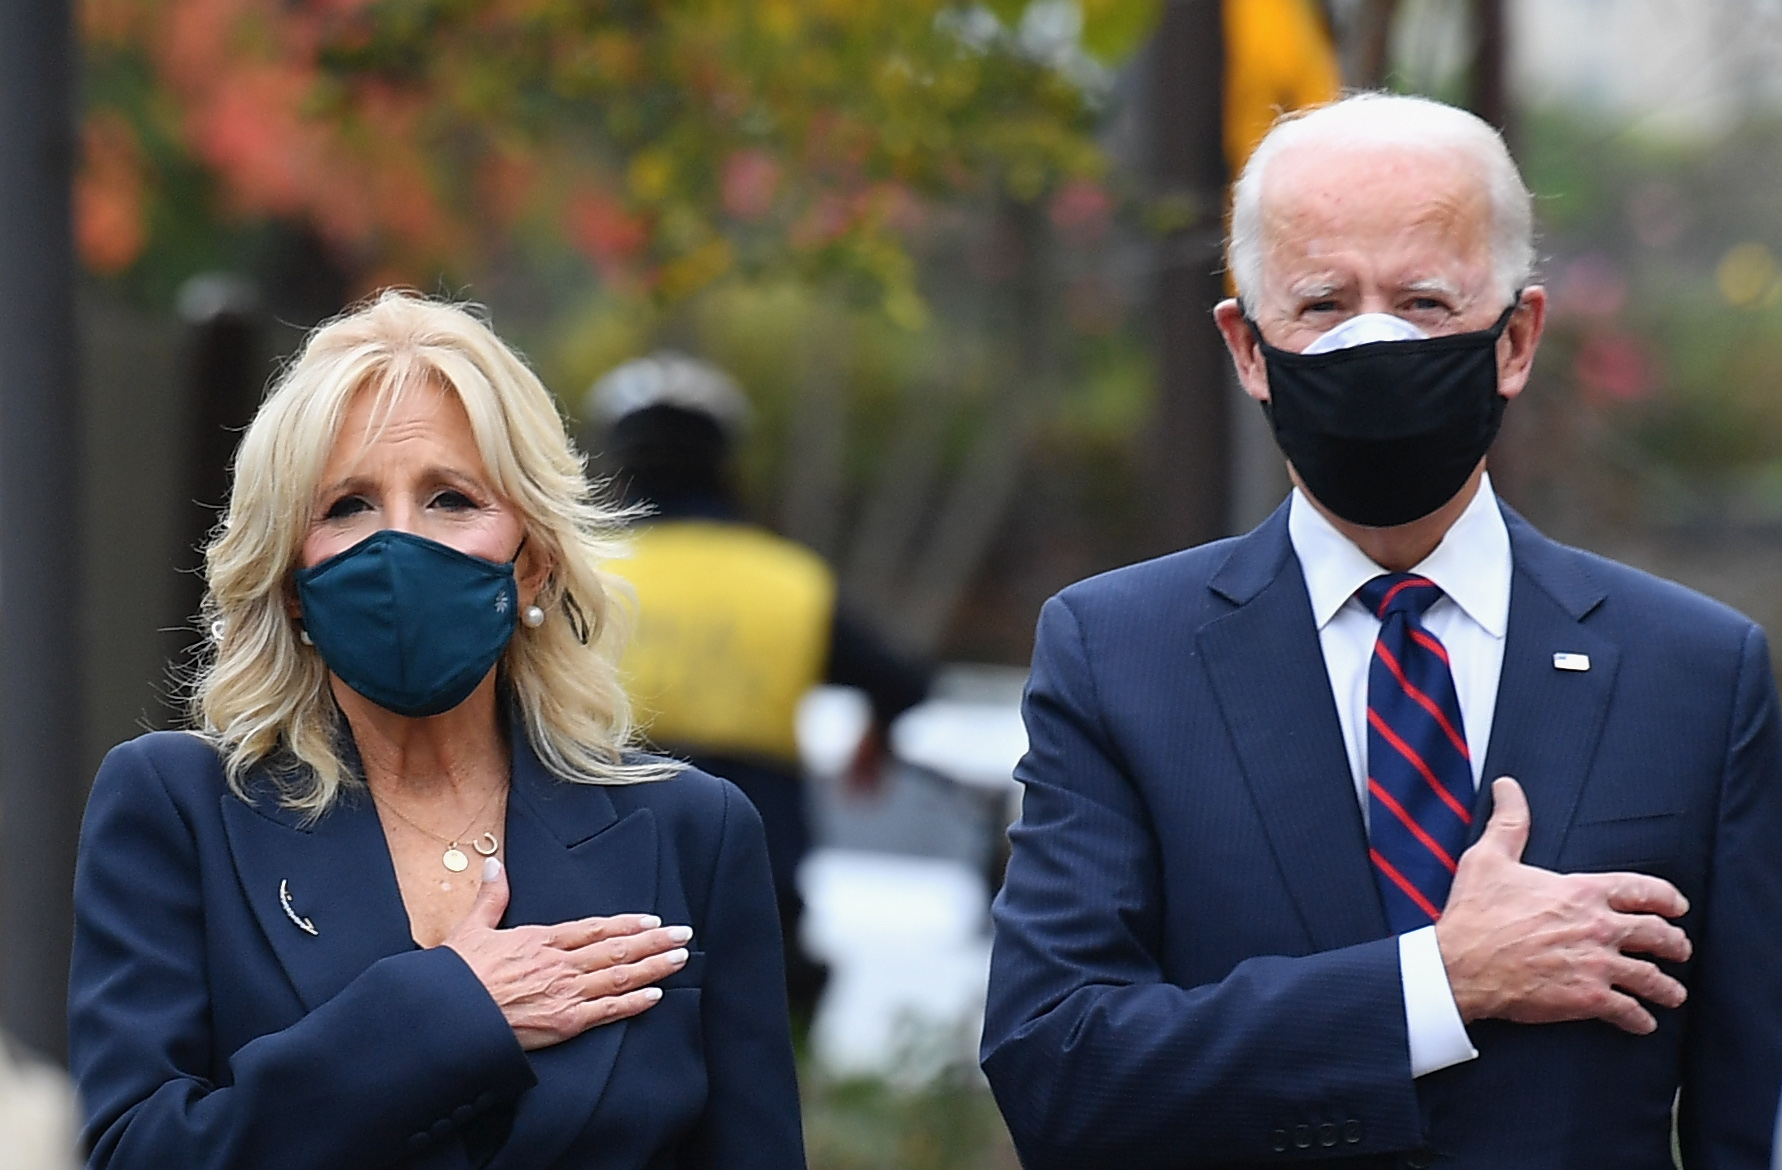 US President-elect Joe Biden and his wife Jill Biden pay their respects during a Veterans Day stop at the Korean War Memorial Park in Philadelphia, Pennsylvania on November 11, 2020. - The leaders of close US allies on November 10, 2020 telephoned President-elect Joe Biden and pledged to work together but in an extraordinary break, America's top diplomat Mike Pompeo insisted that Donald Trump would remain in power. The transition team said Biden planned to work with the Europeans on fighting the Covid-19 pandemic as well as climate change -- one of many areas on which Trump sharply differed with the allies. (Photo by ANGELA WEISS/AFP via Getty Images)